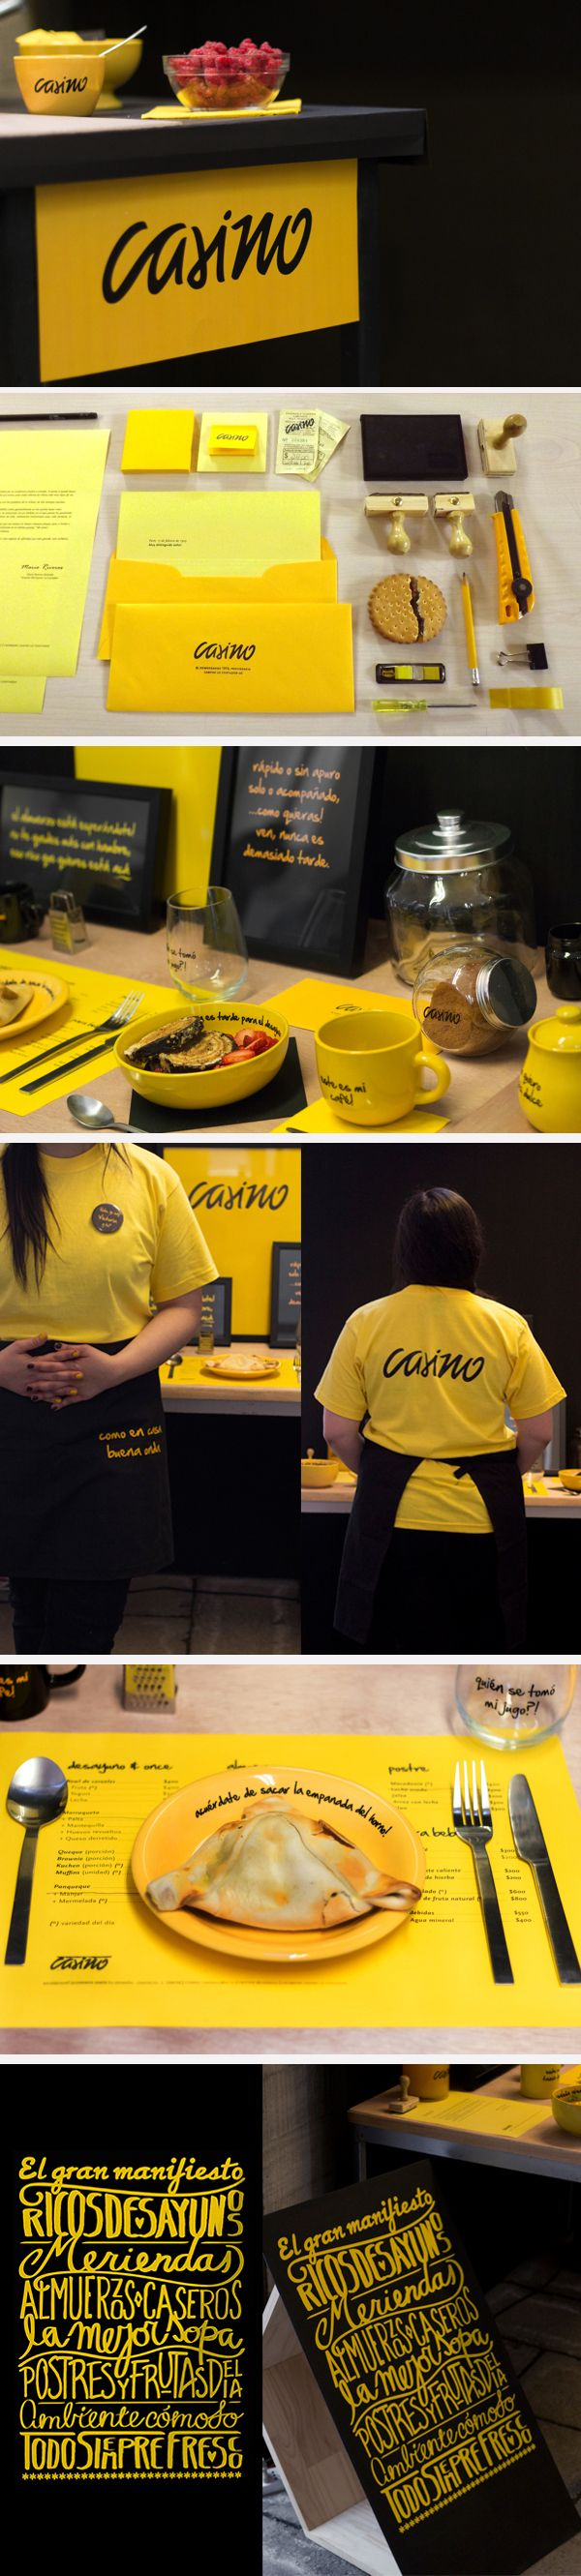 Casino food place © Victoria Gallardo ı{psychology and dieting, yellow: warm colours like red and yellow stimulate the appetite - and family quarrels}